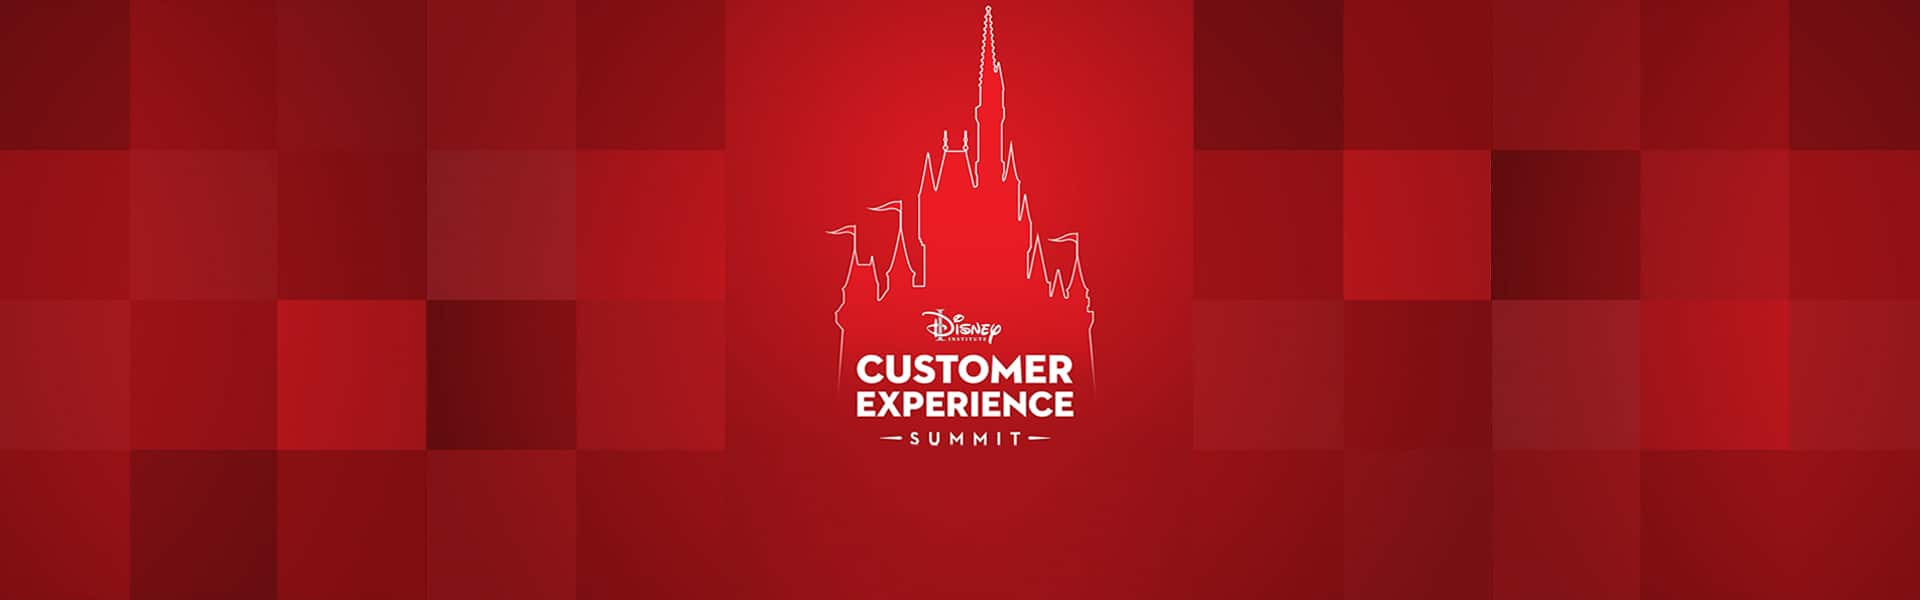 promotion disney noel 2018 Customer Experience Summit | Disney Institute promotion disney noel 2018